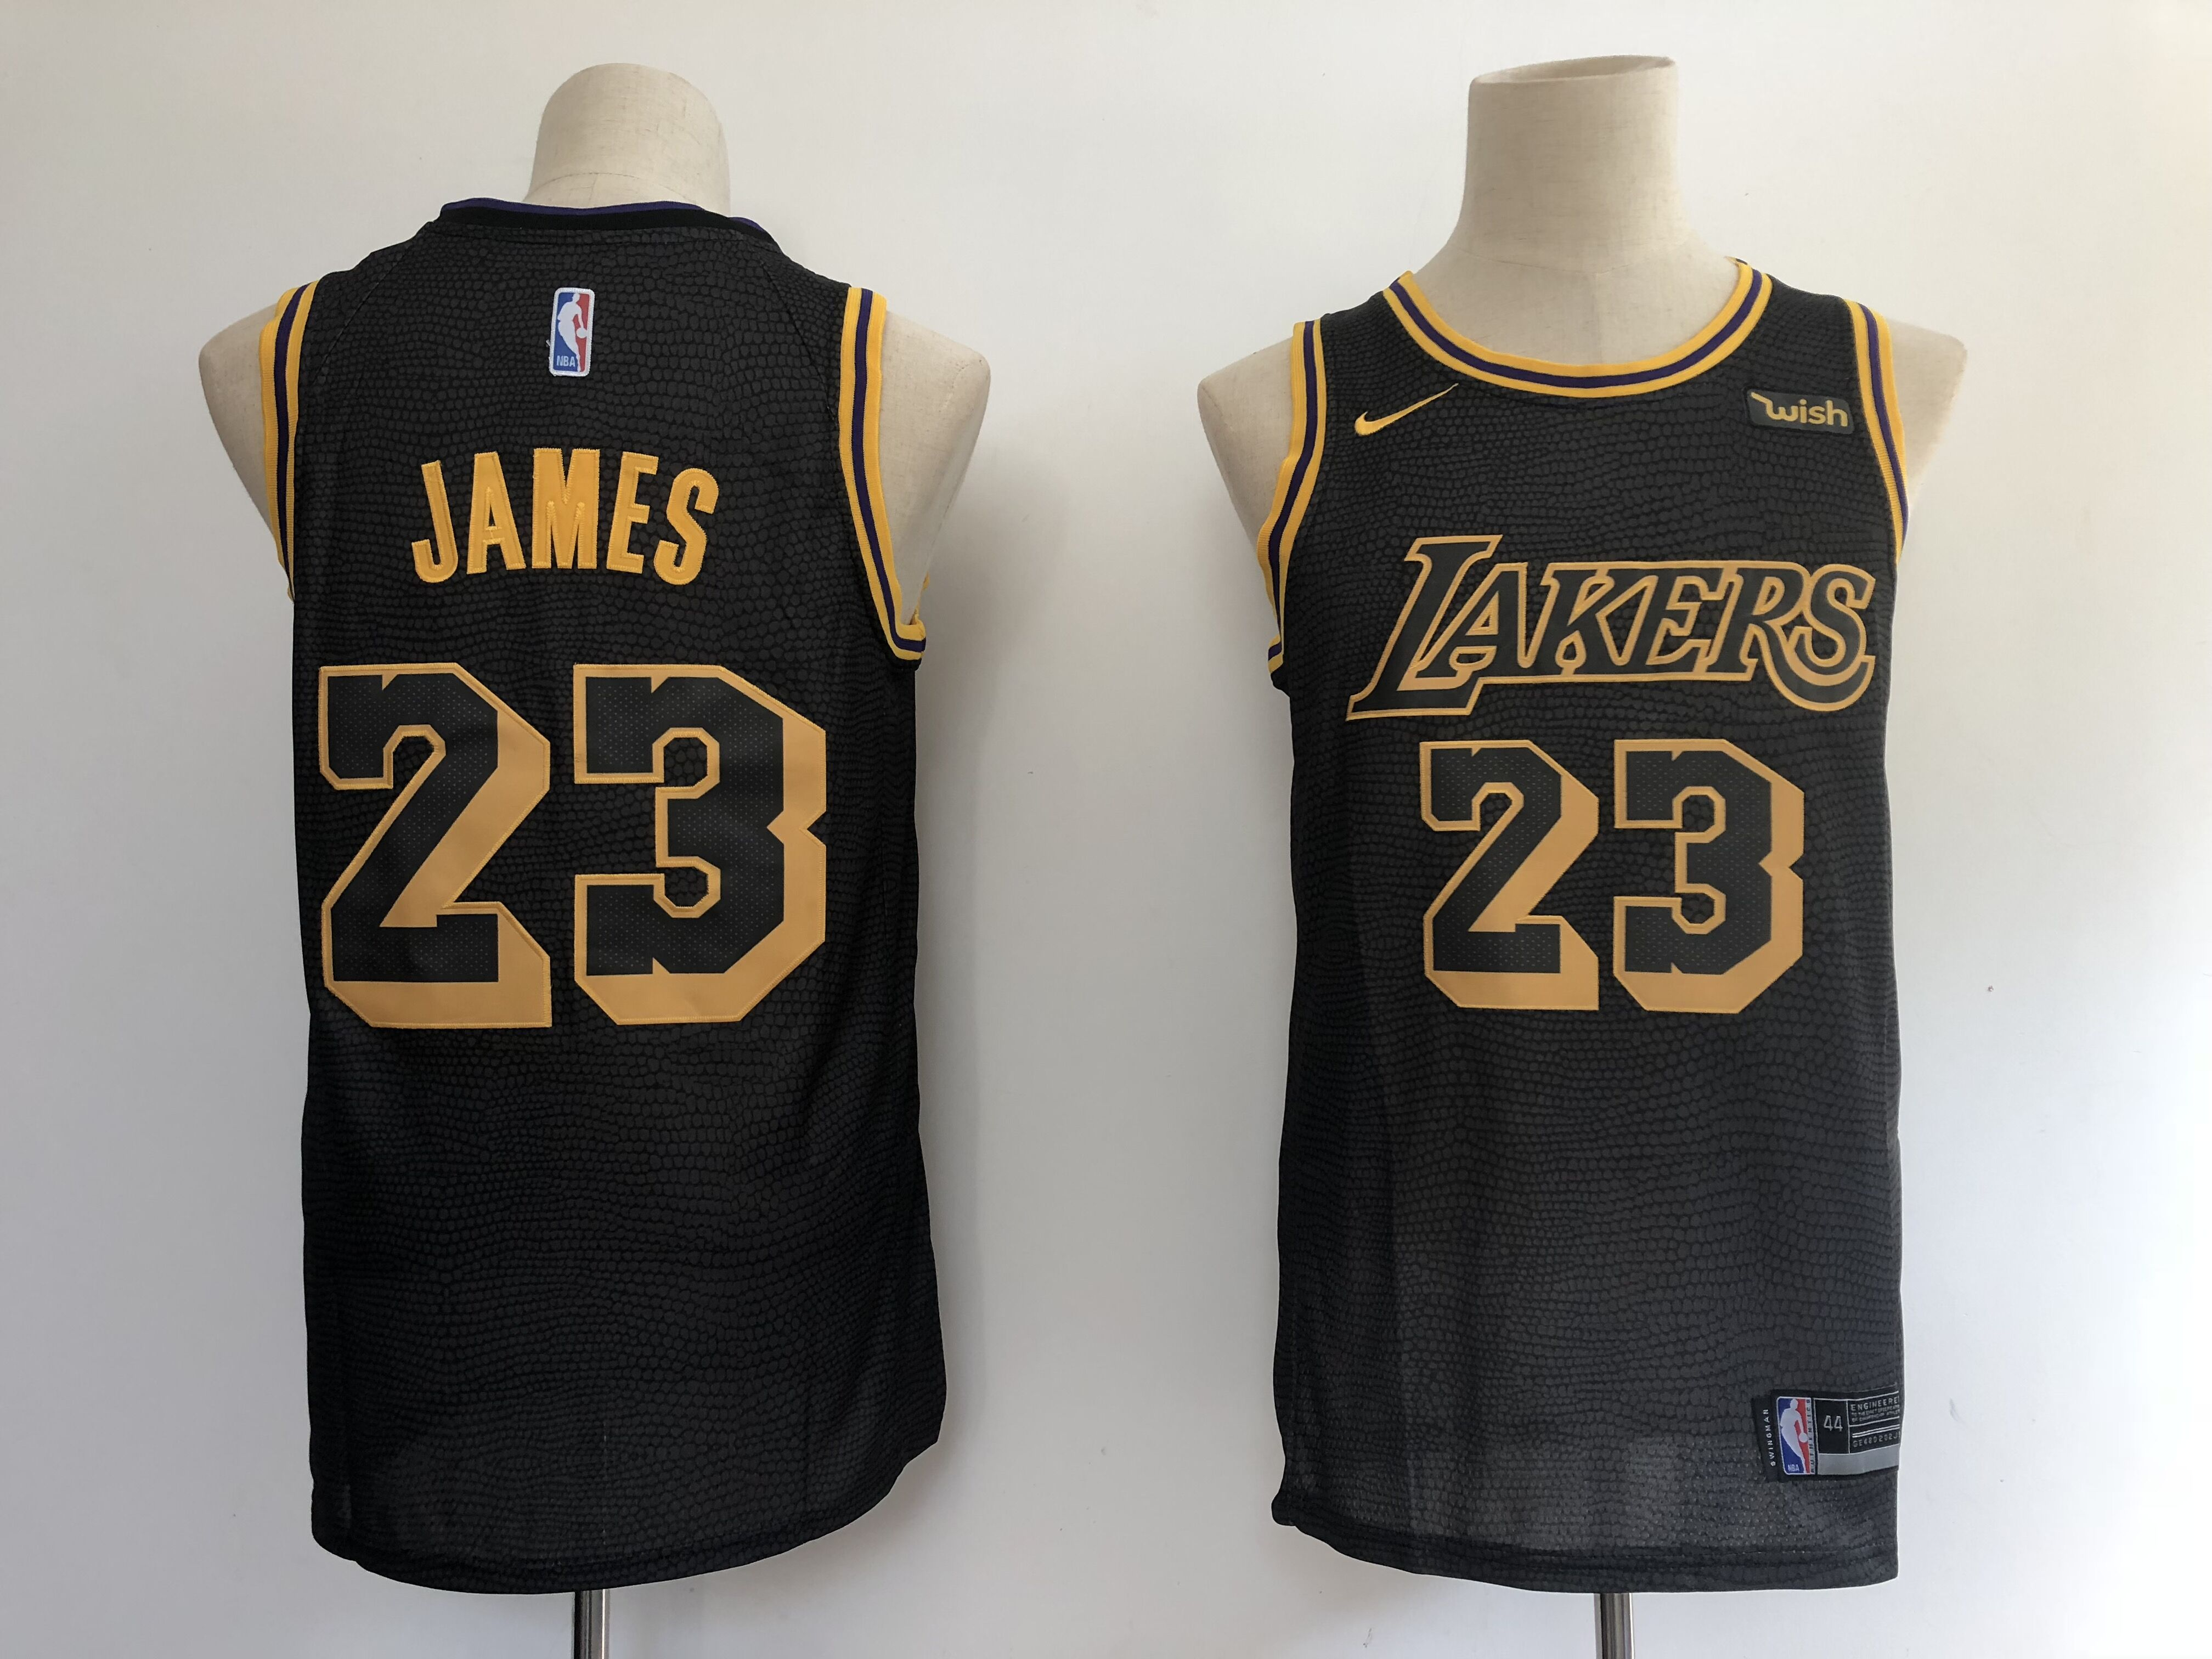 premium selection 77732 64653 Men's Los Angeles Lakers #23 LeBron James Basketball Jersey from  teamjerseyinc